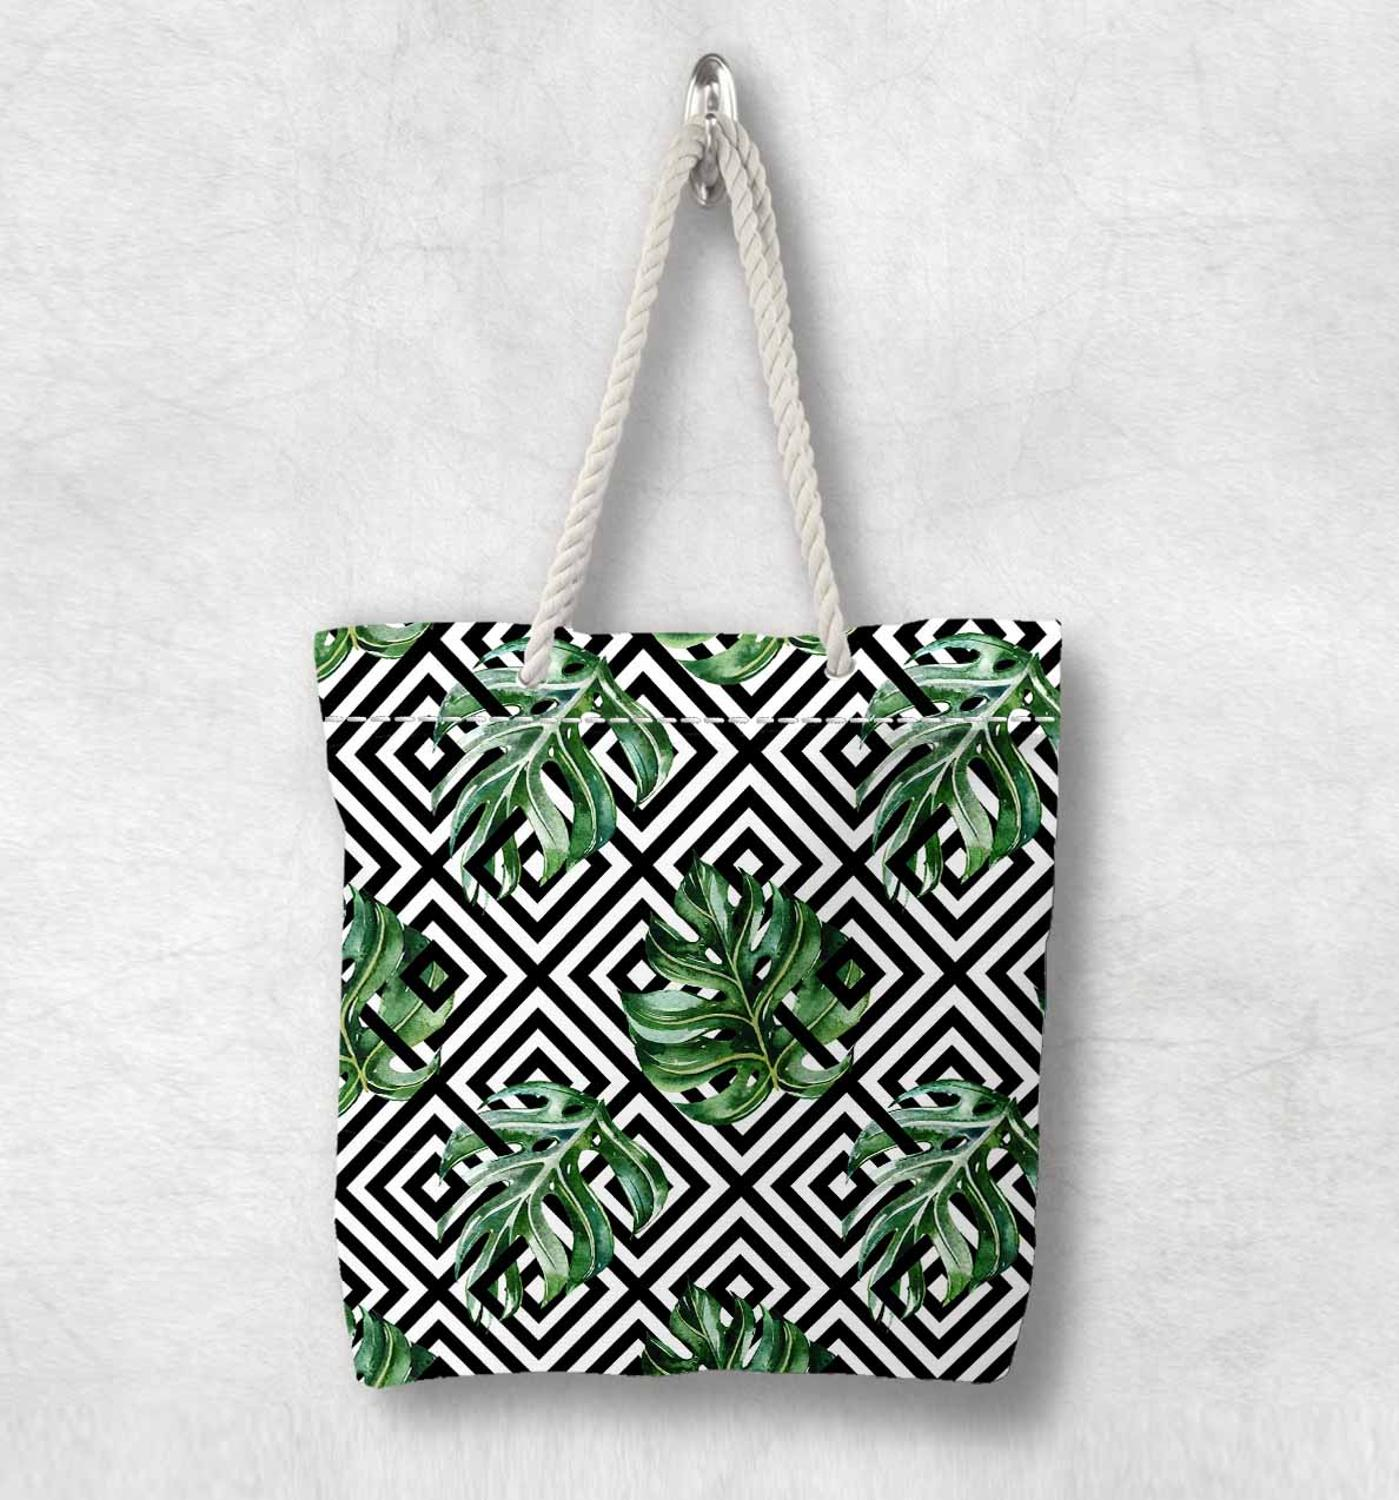 Else Black White Tiles Green Leaves Geometric Fashion White Rope Handle Canvas Bag Cotton Canvas Zippered Tote Bag Shoulder Bag